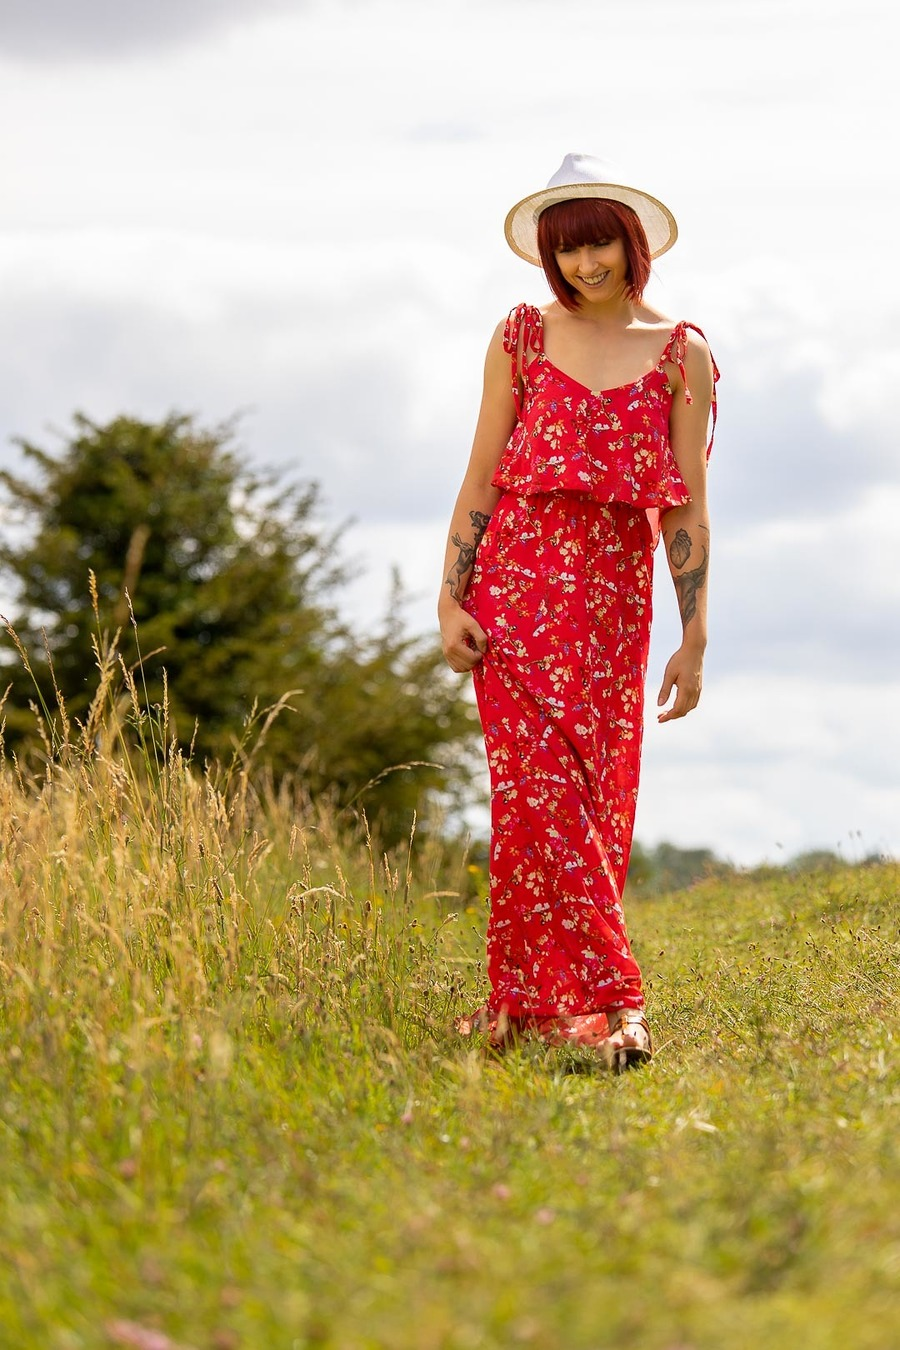 A Stroll in the Sunshine / Photography by Brian - p4pictures, Model HT / Uploaded 27th July 2019 @ 10:34 AM